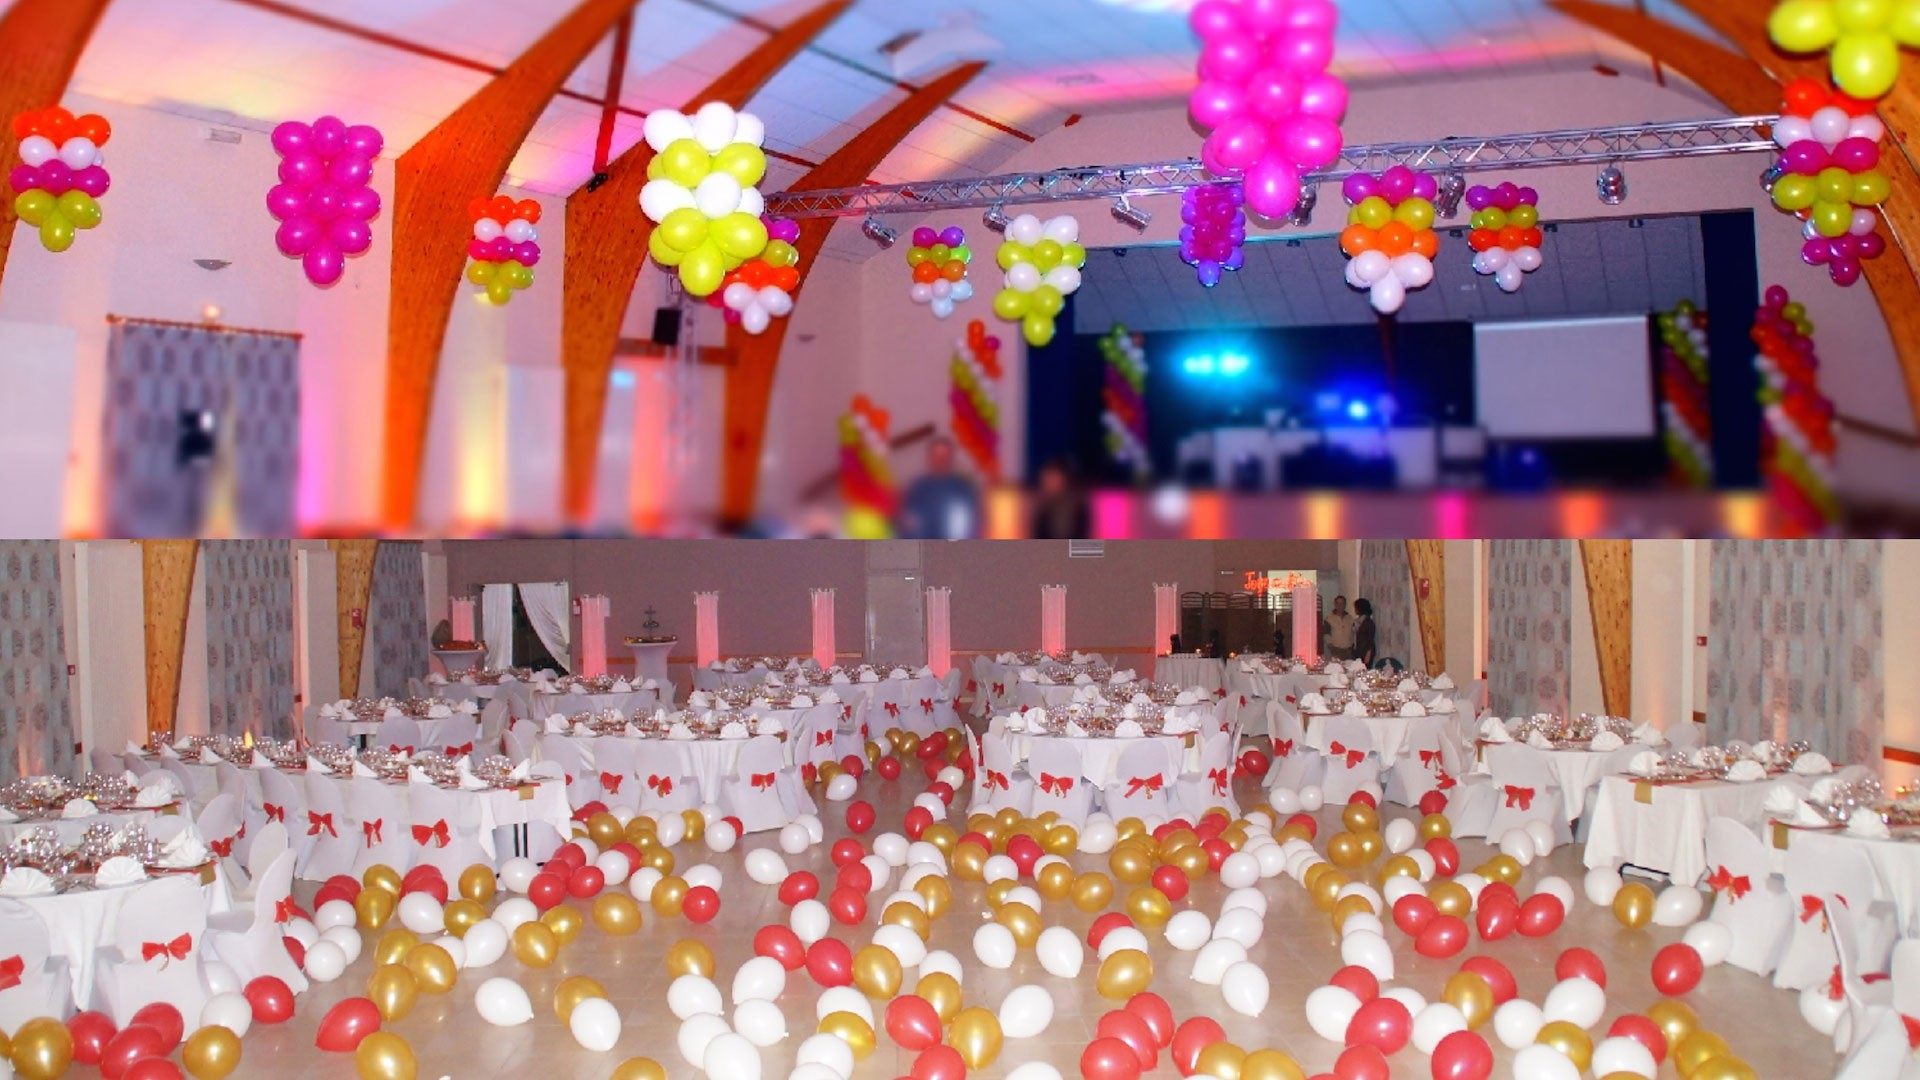 D co ballons sacha mls music lights system - Deco reveillon nouvel an ...